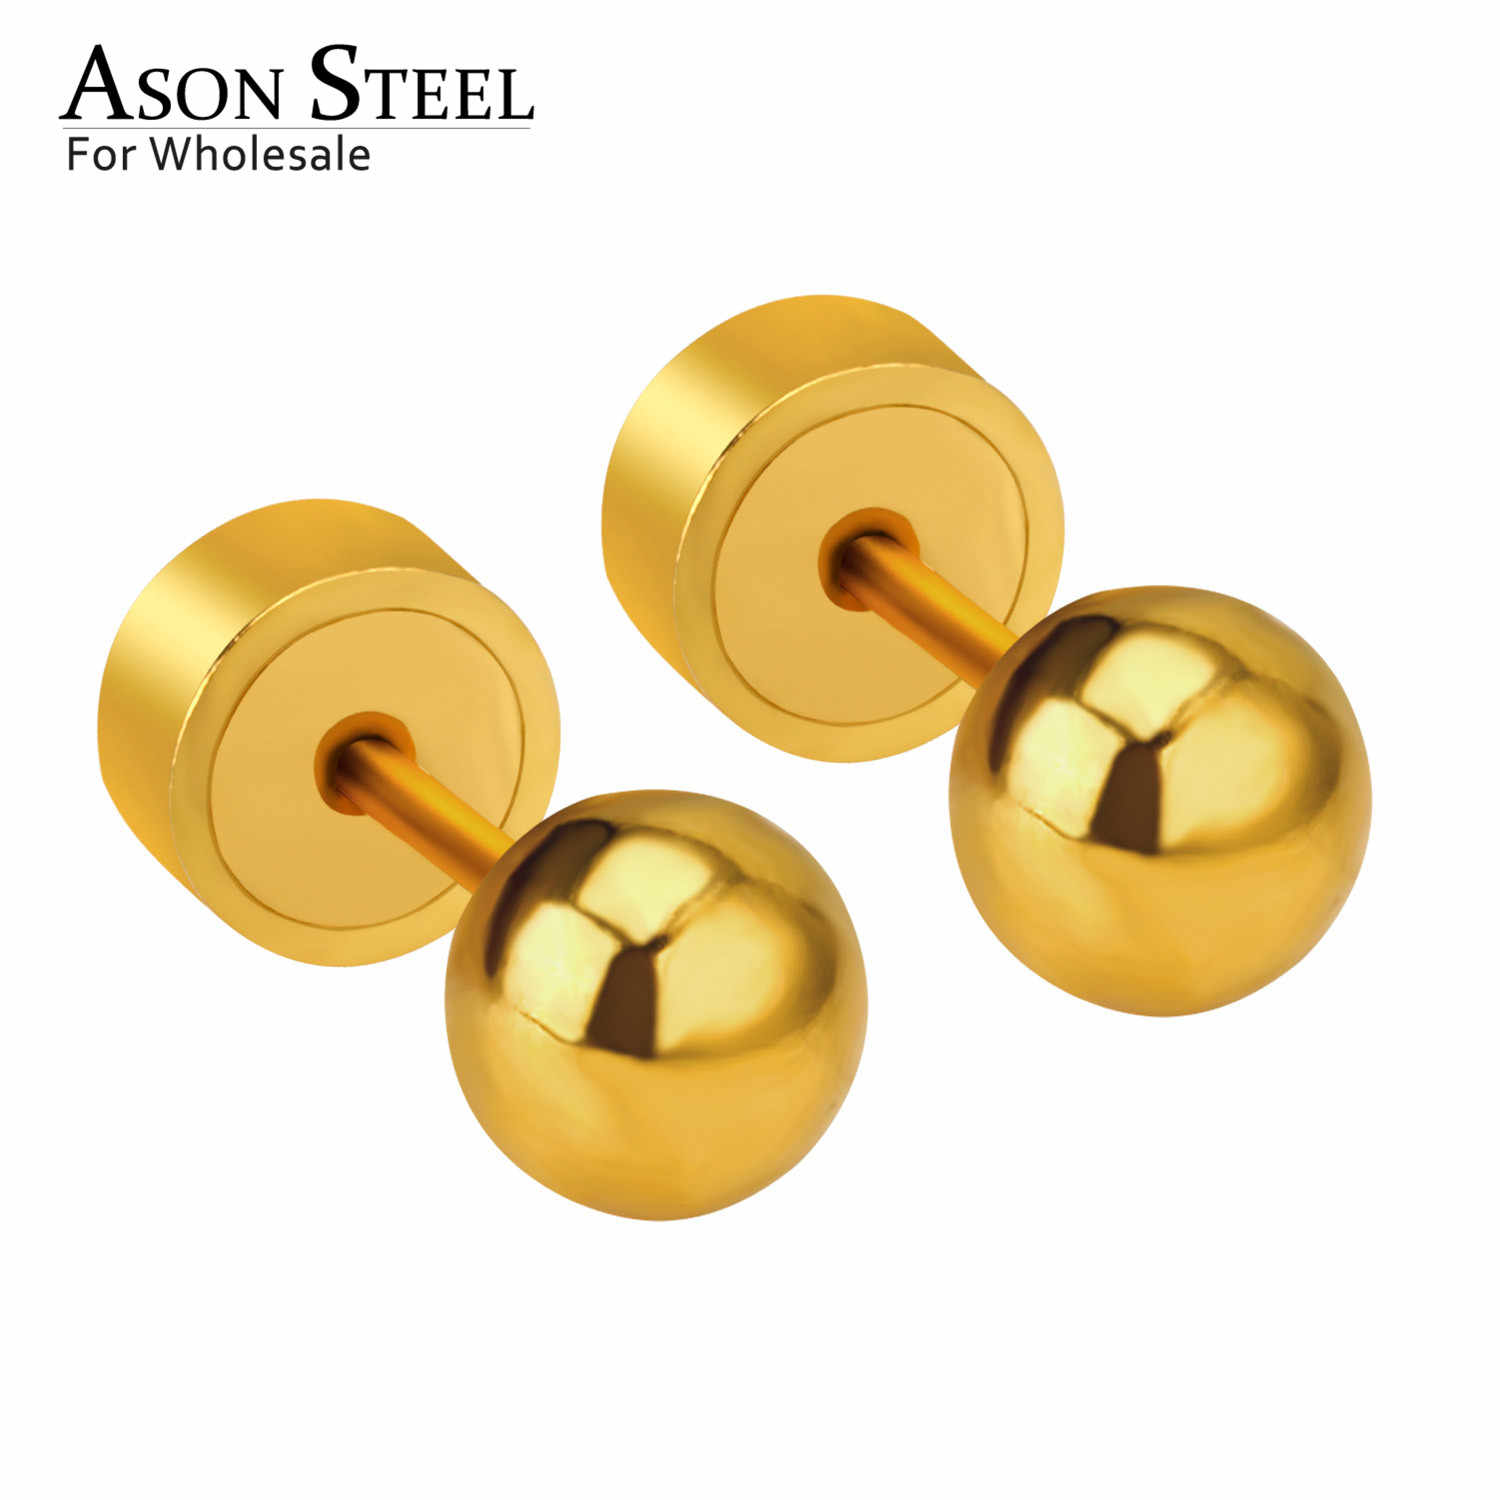 Asonsteel Stainless Steel Emas/Perak Warna Ball Press Stud Anting-Anting Stainless untuk Bayi/Anak 3 Mm/4 MM/5 Mm Bulat Anting-Anting 2020